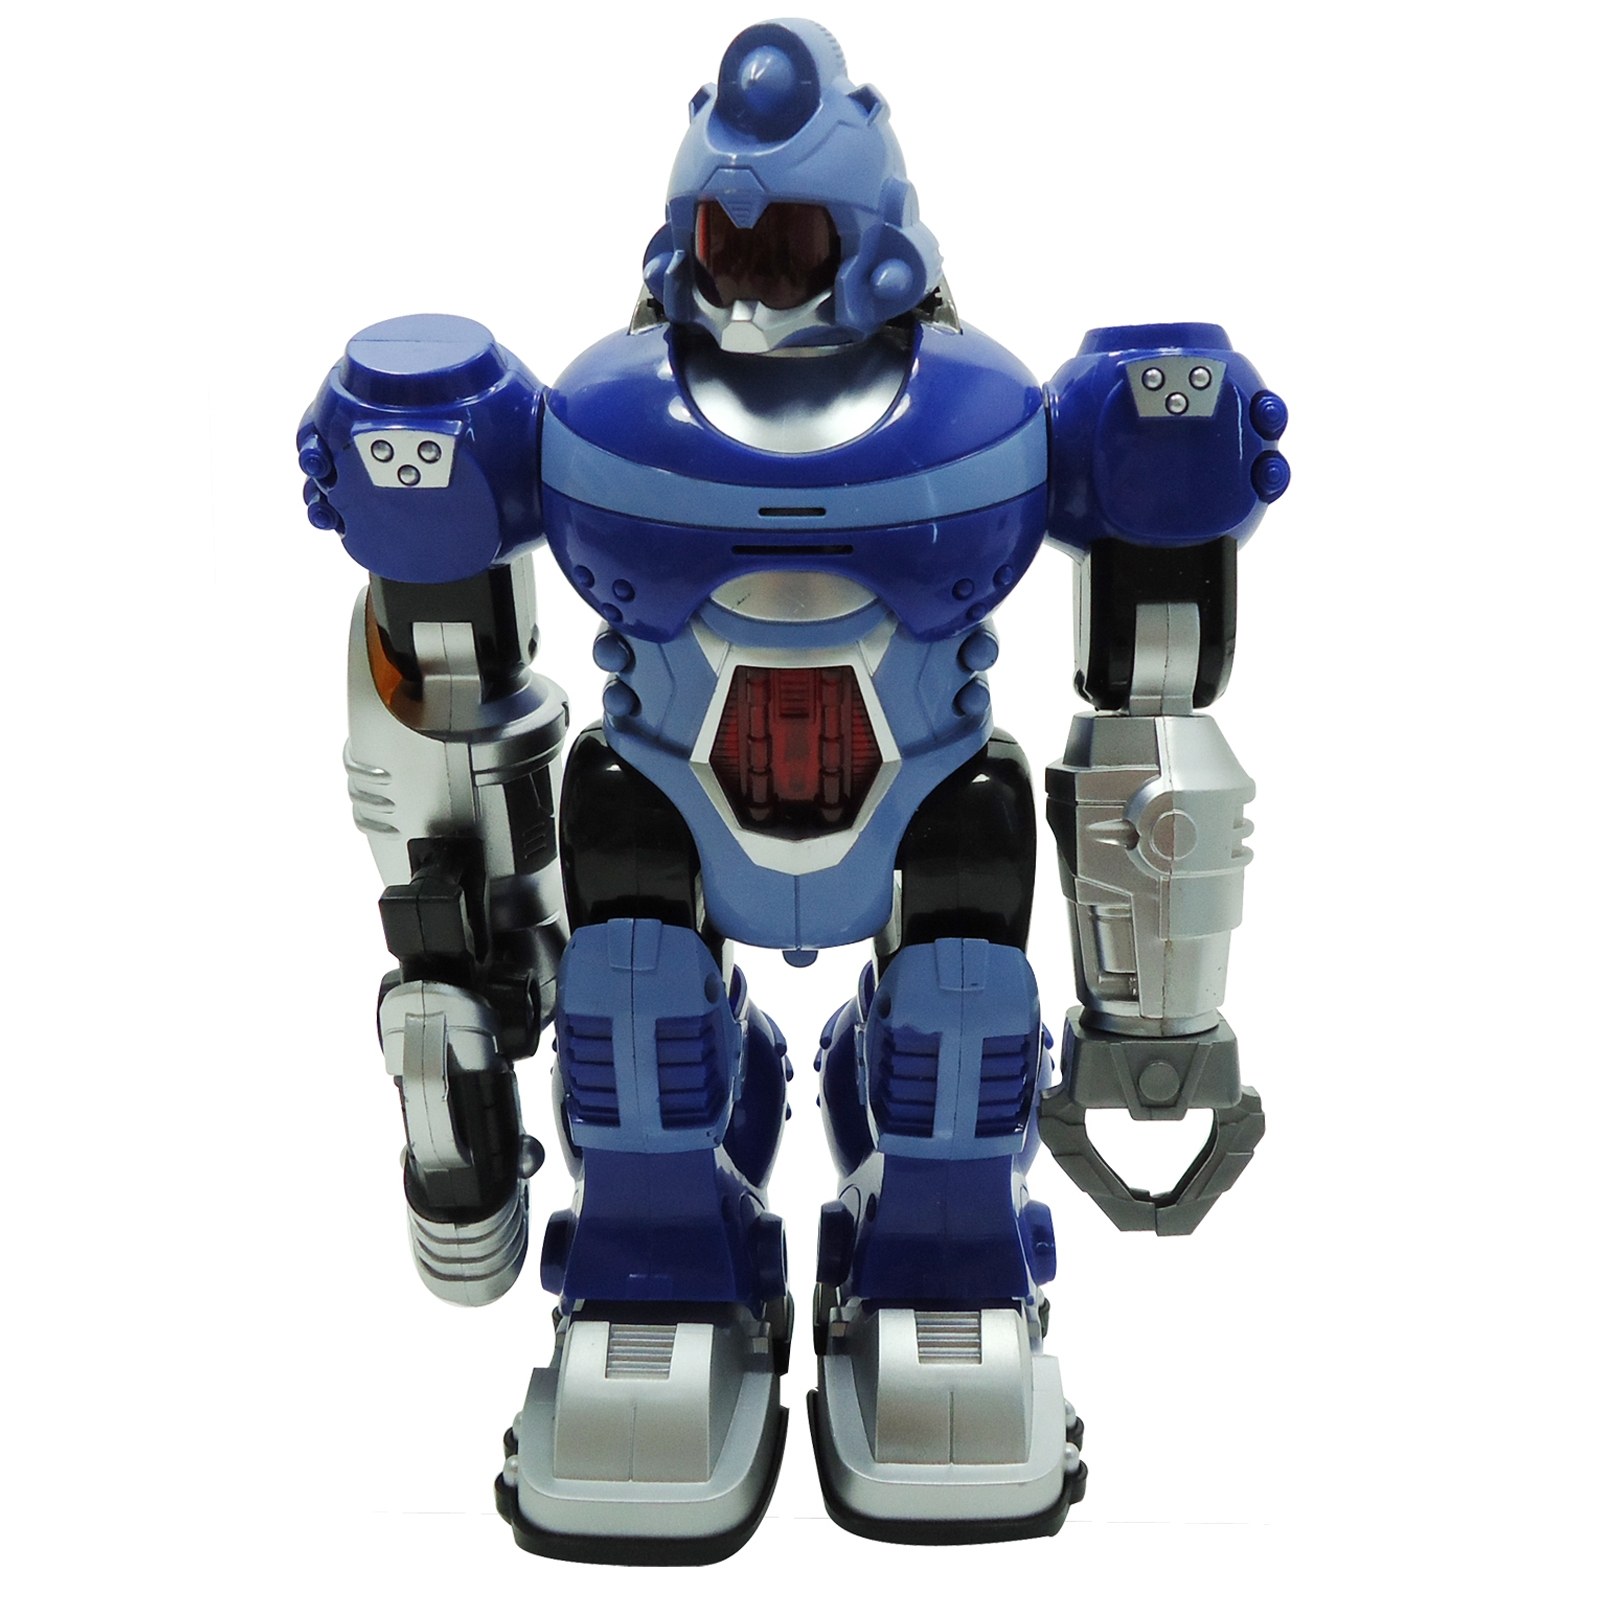 Power Warrior Light Up Walking Super Robot Action Figure